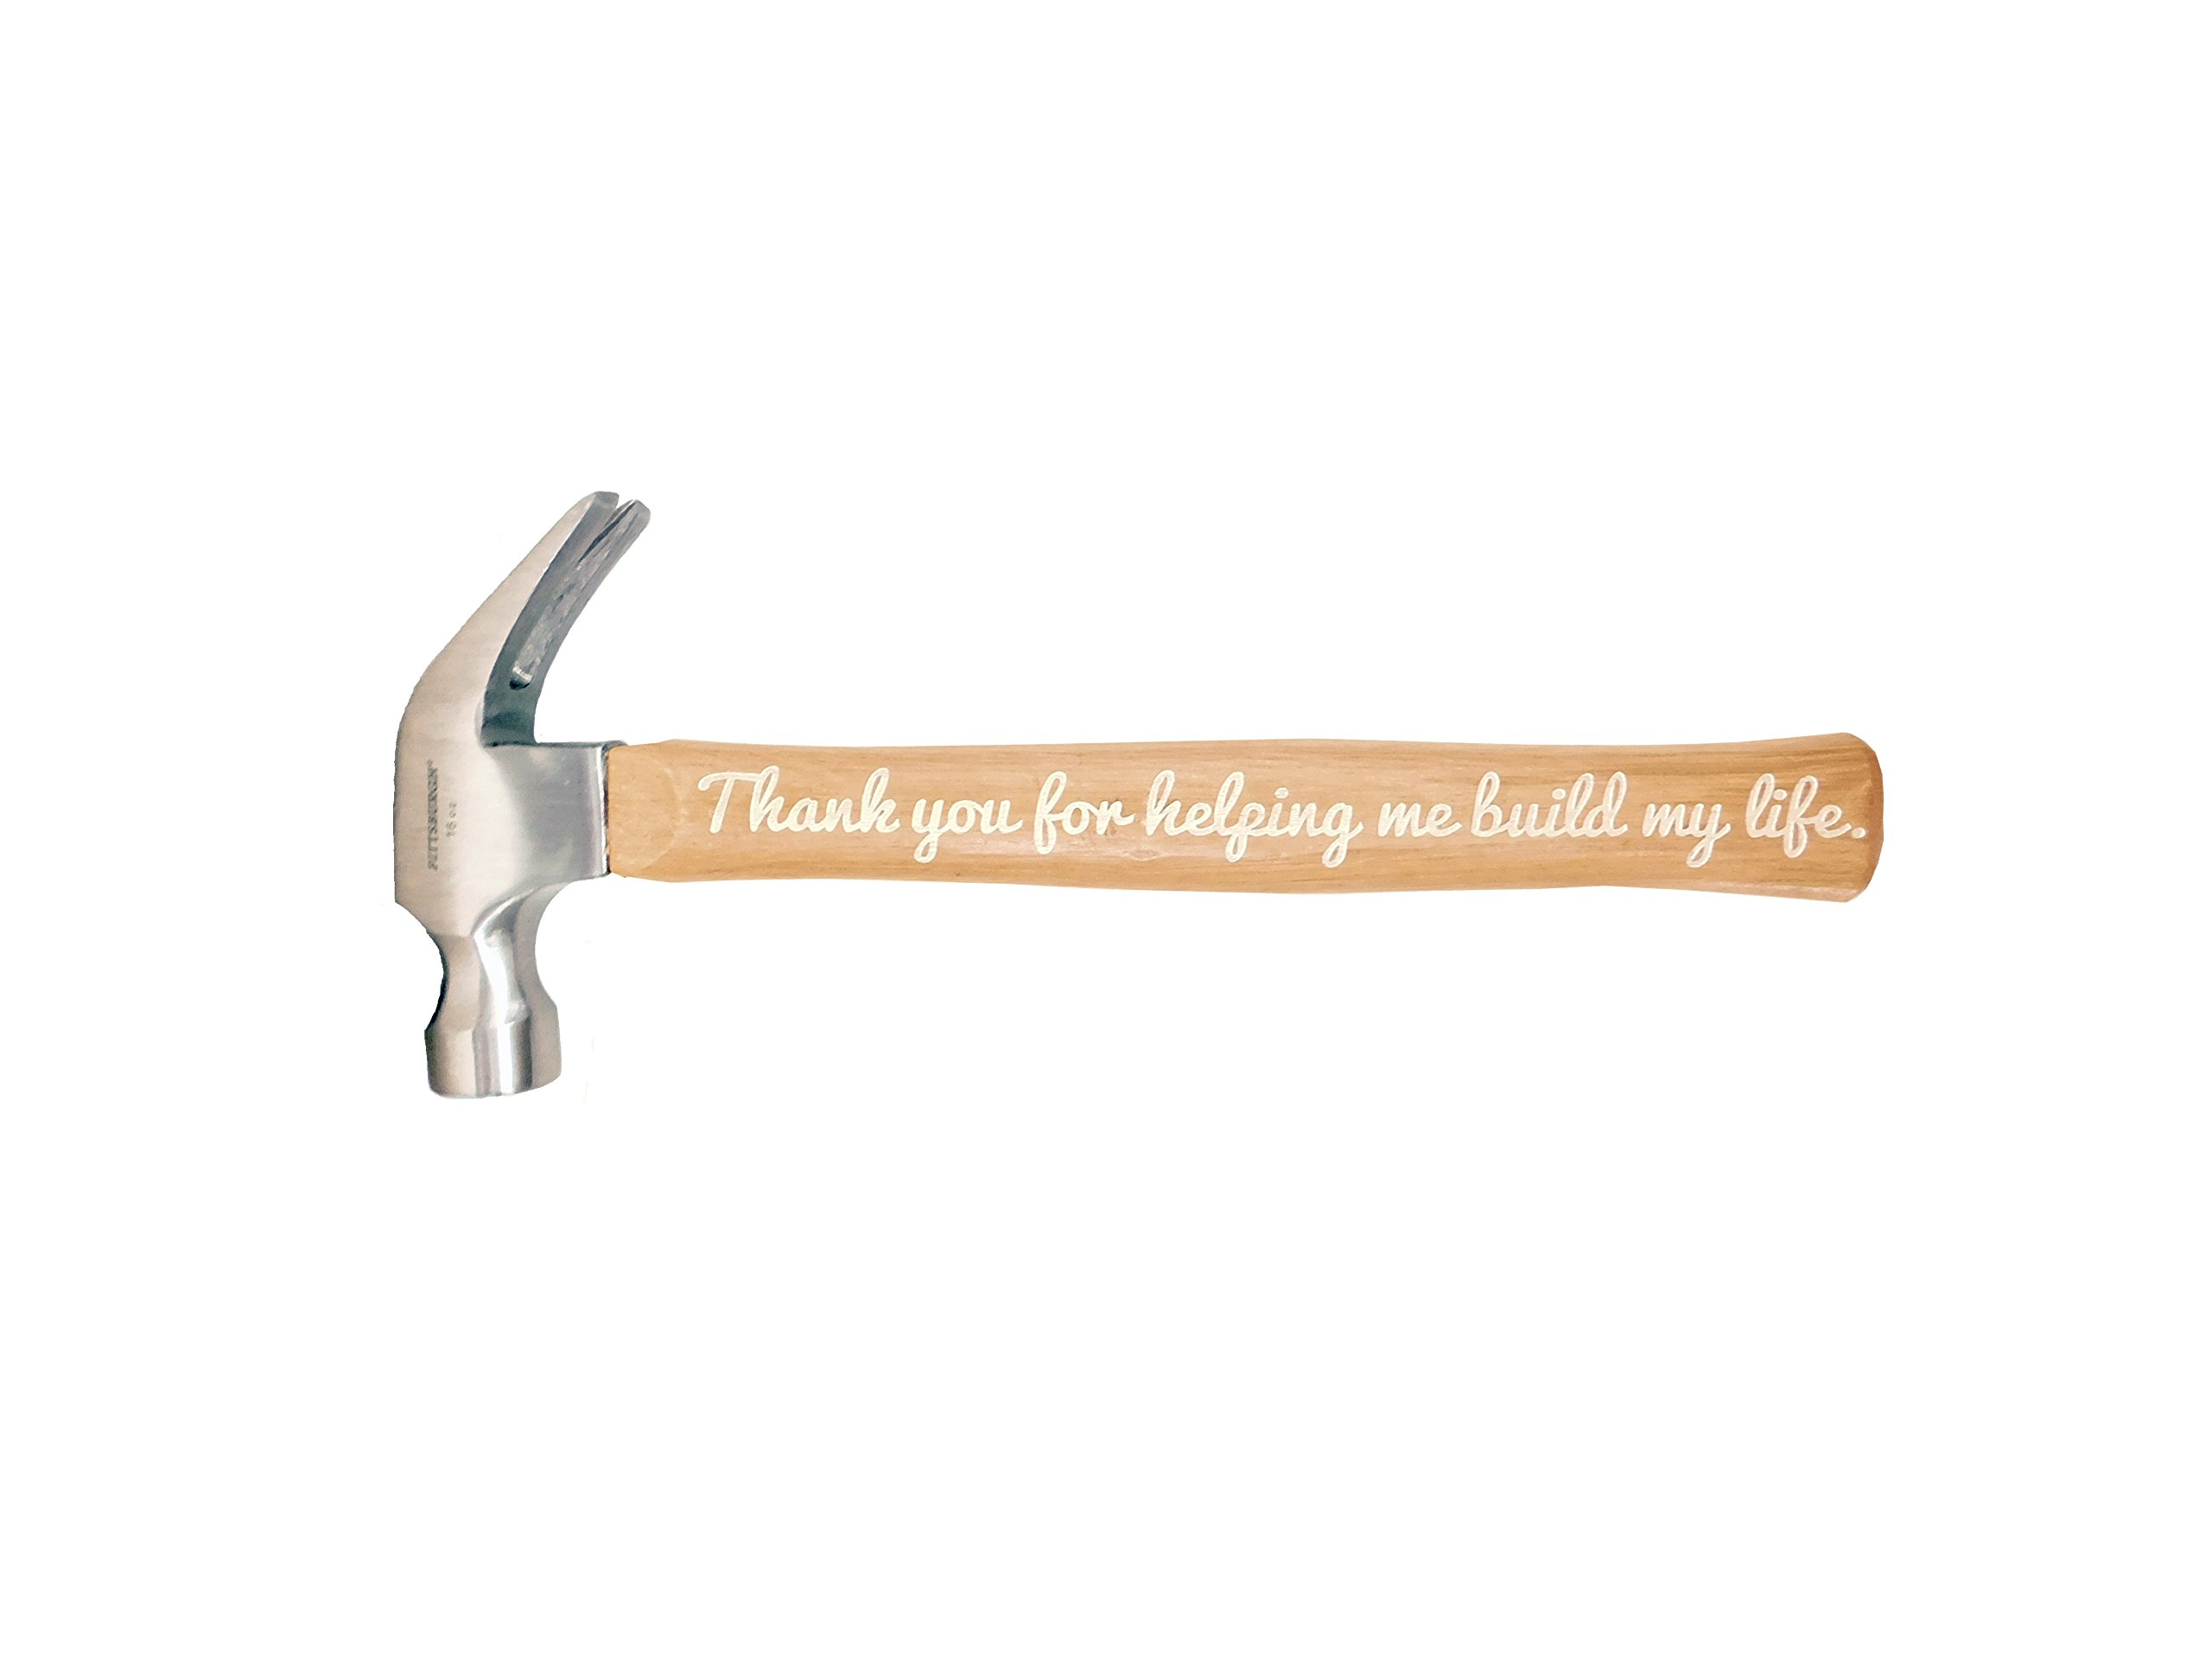 Father's Day Gift Thank You for Helping Me Build My Life DIY Gift Engraved Wood Handle Steel Hammer Color-fill Avaliable (Silver)